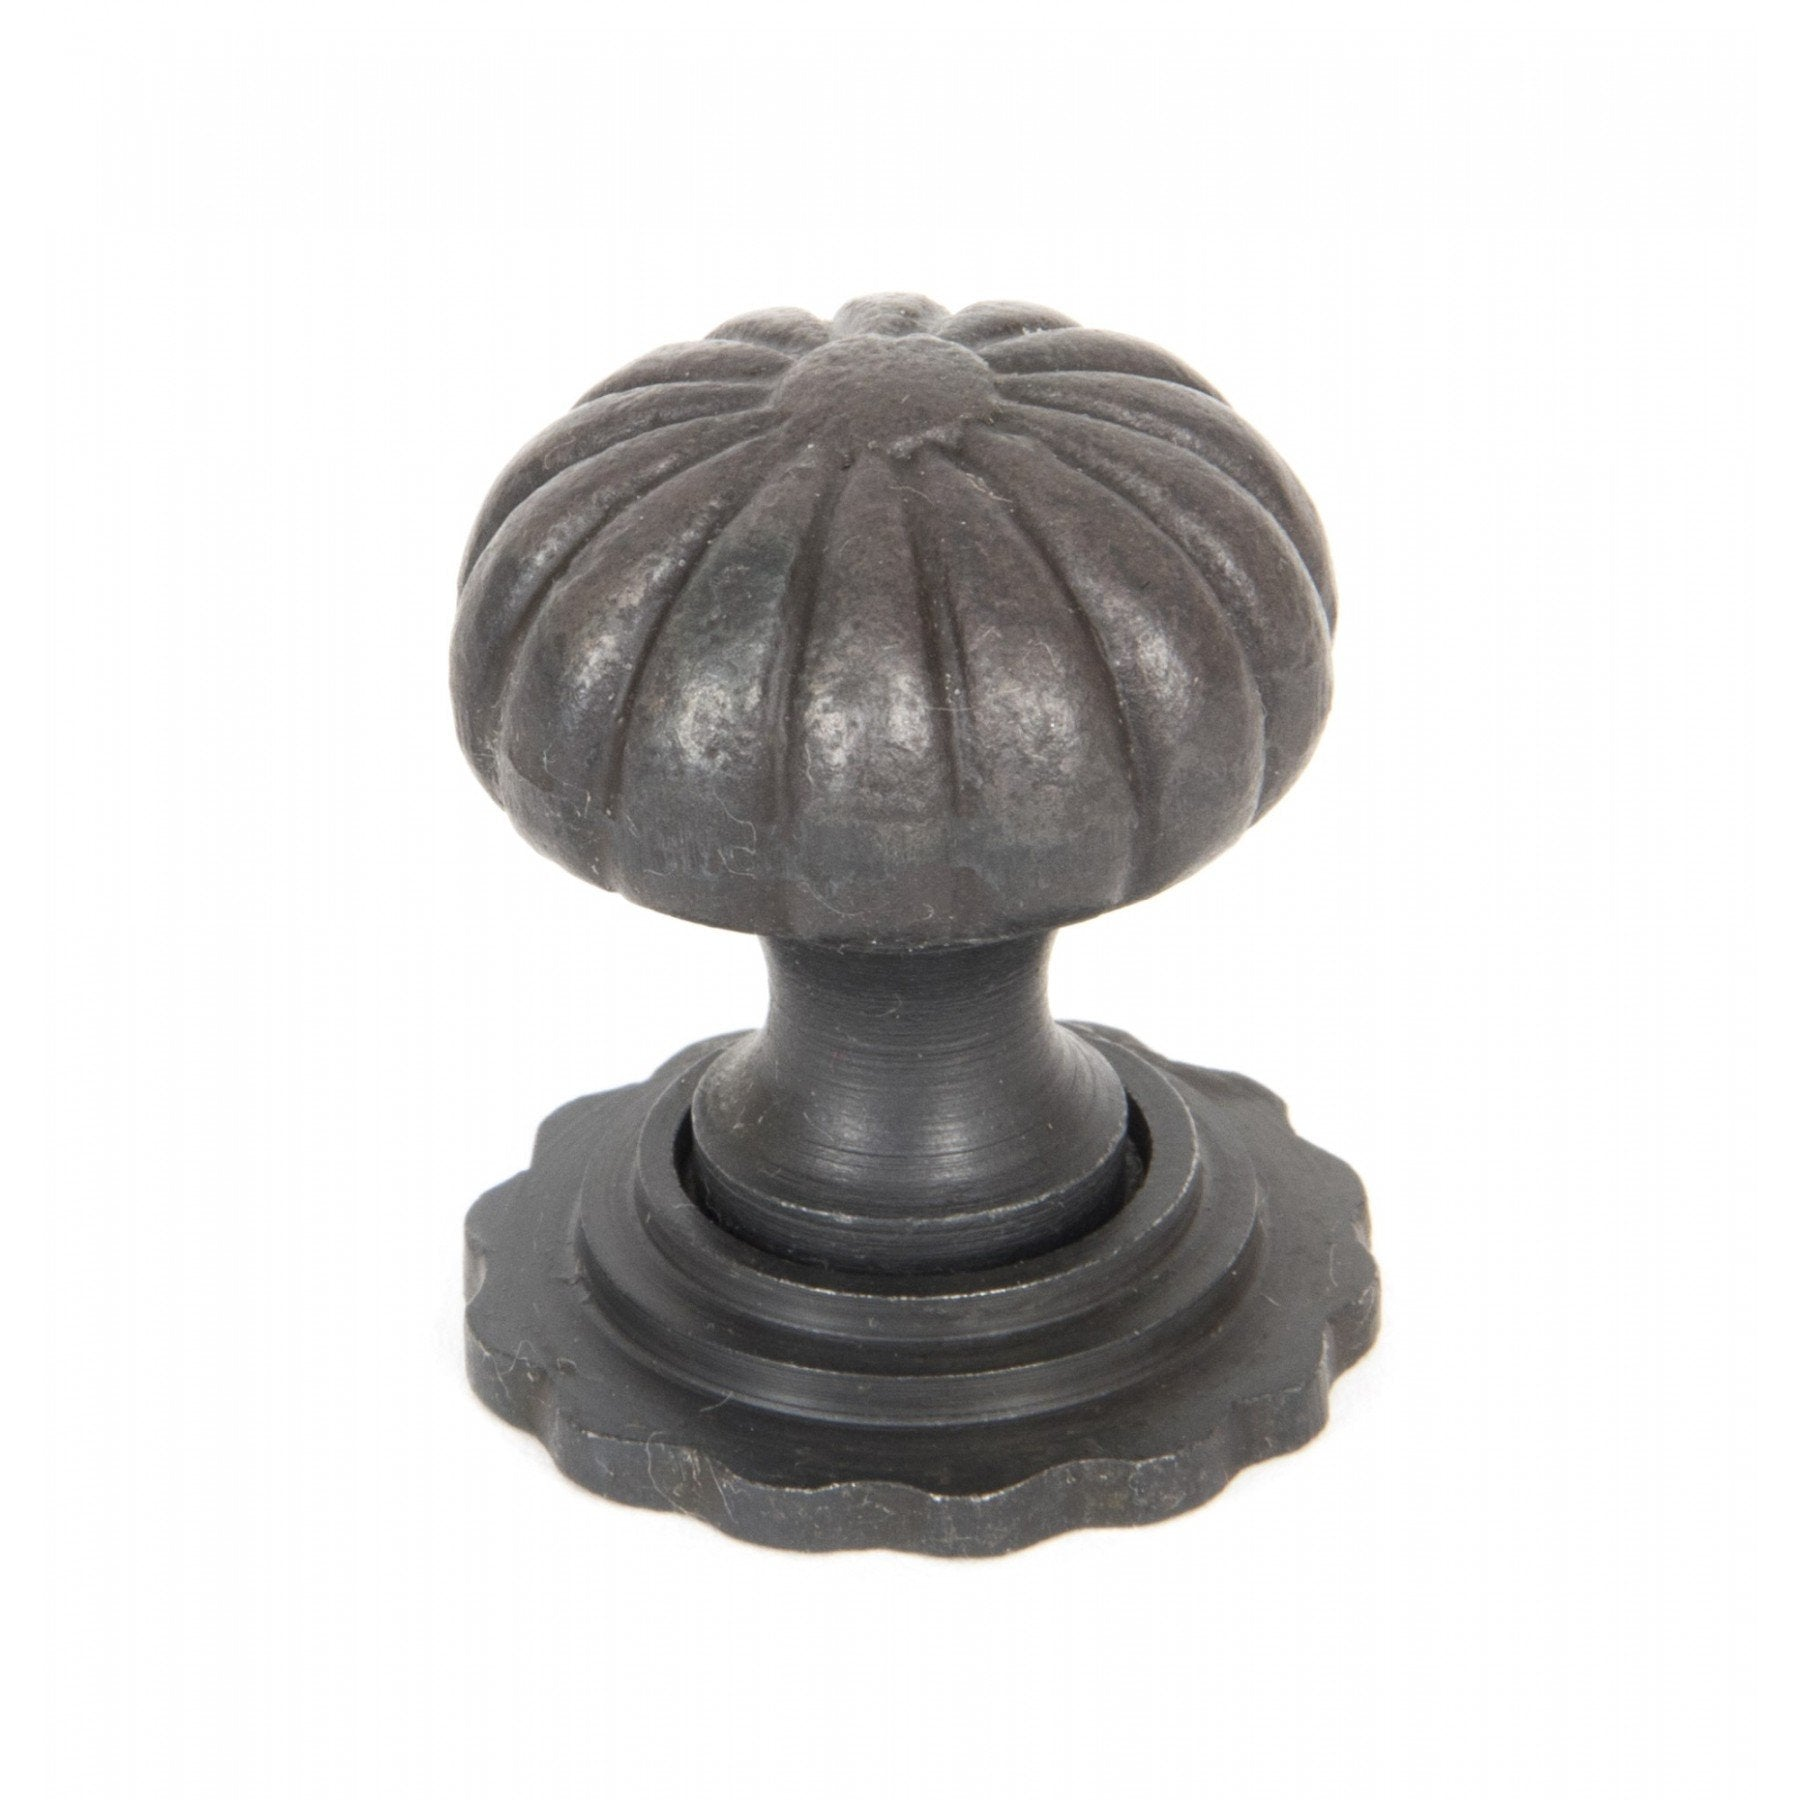 Beeswax Cabinet Knob with Base - Small